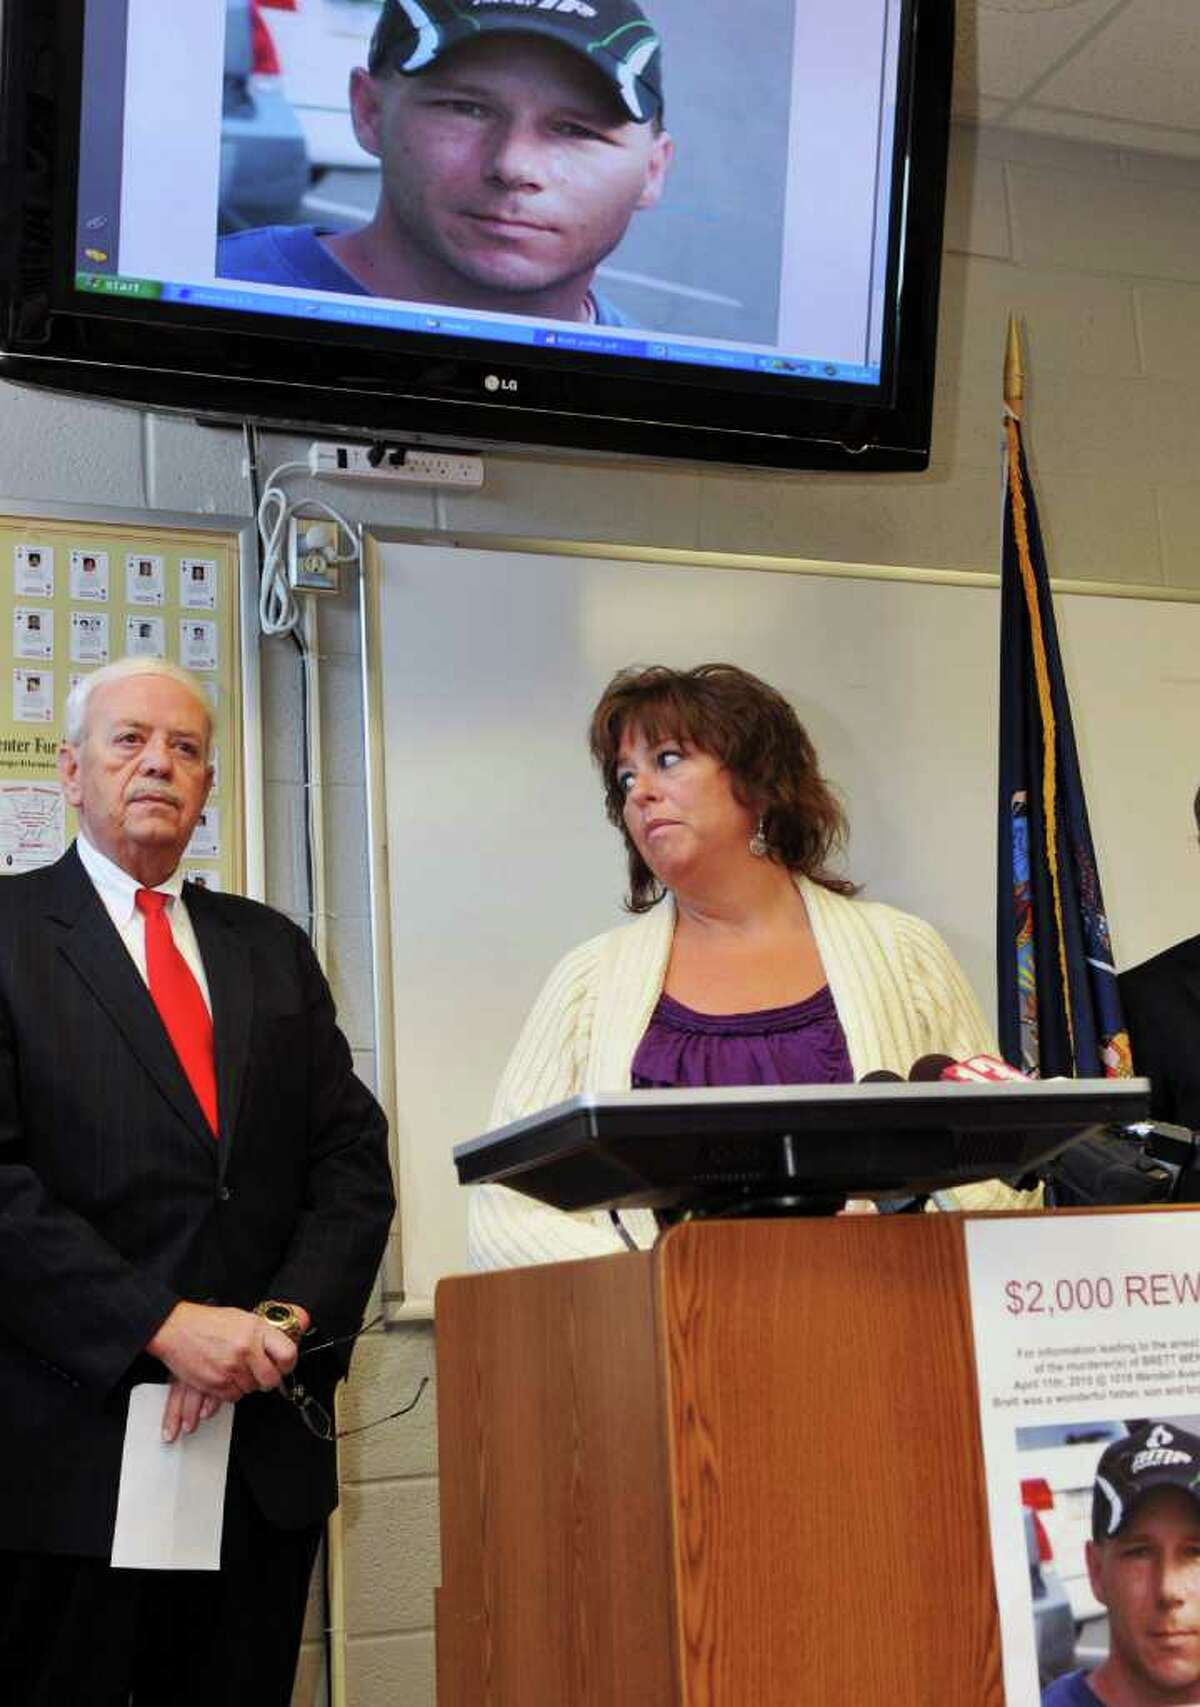 Margaret Messer of Niskayuna, sister of murder victim Brett Wentworth joins Schenectady Public Safety Commisser Wayne Bennett, left, at a news conference at the Schenectady Police Dept. appealing for the public's help Tuesday. Wentworth was discovered dead last year in his Wendell Avenue apartment. (John Carl D'Annibale / Times Union)